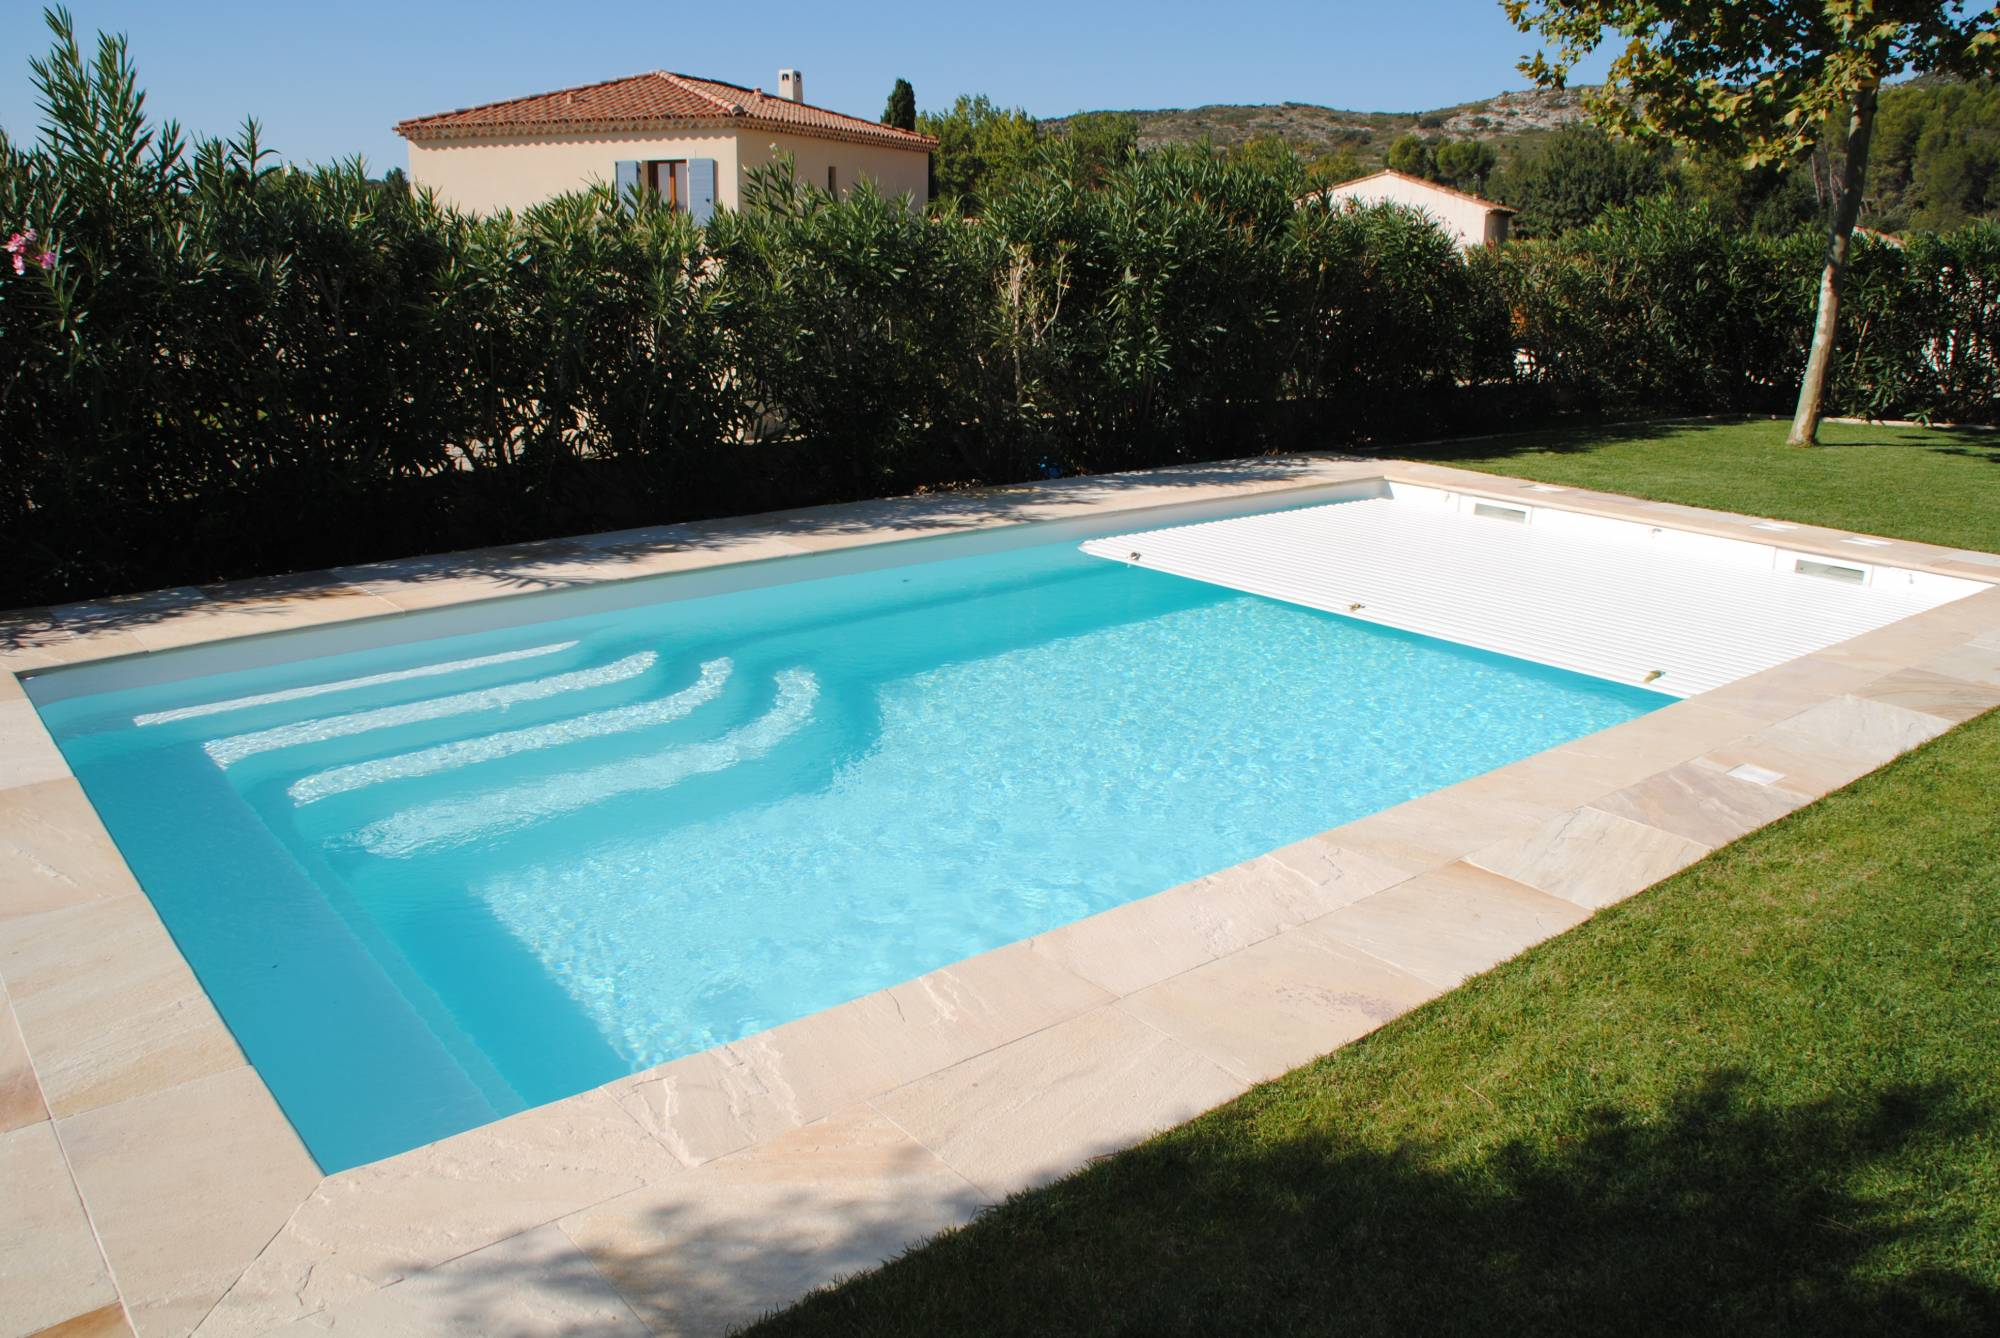 Piscine coque polyester volet immerg marseille france for Piscine coque polyester avec volet immerge